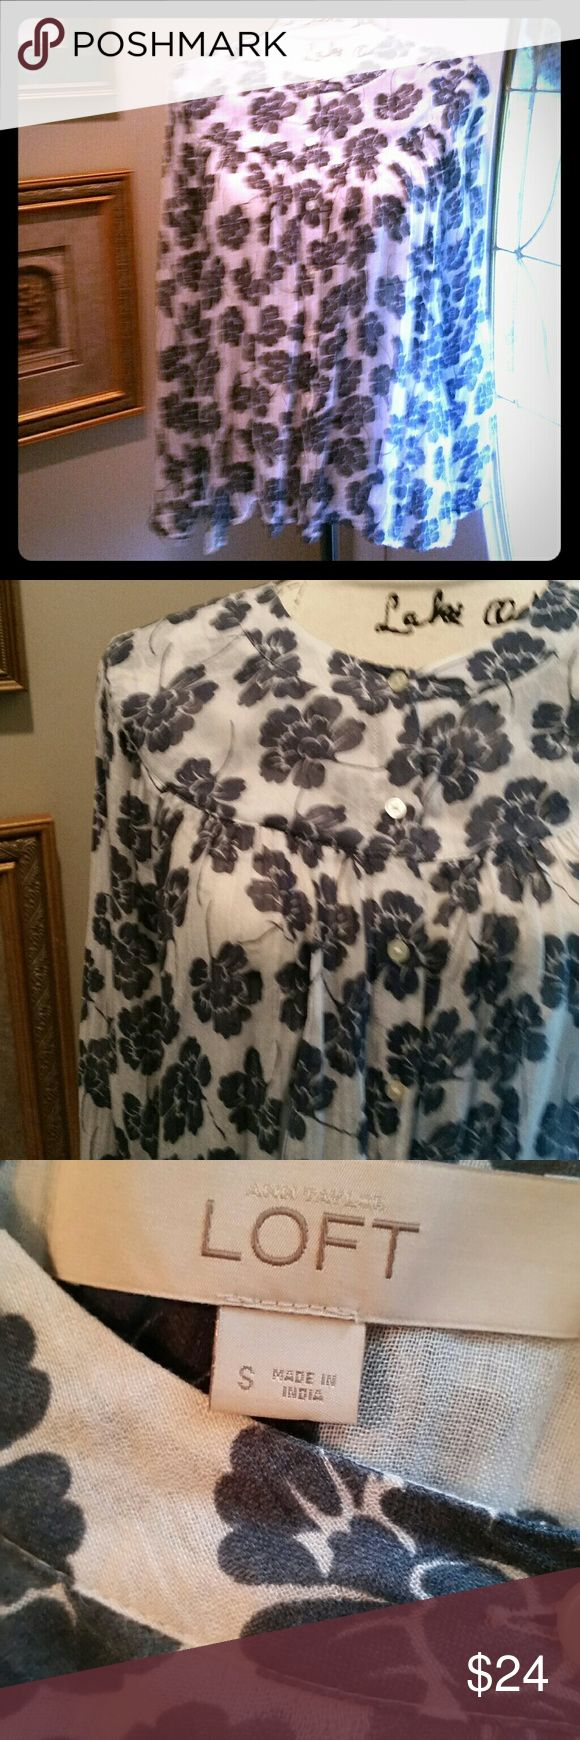 LOFT by Ann Taylor Floral Smock Top Breezy cotton smock style top  in off-white and navy blue floral pattern. Button front, long-sleeved with yoke at neckline. Perfect partner with your favorite jeans. EUC LOFT Tops Blouses